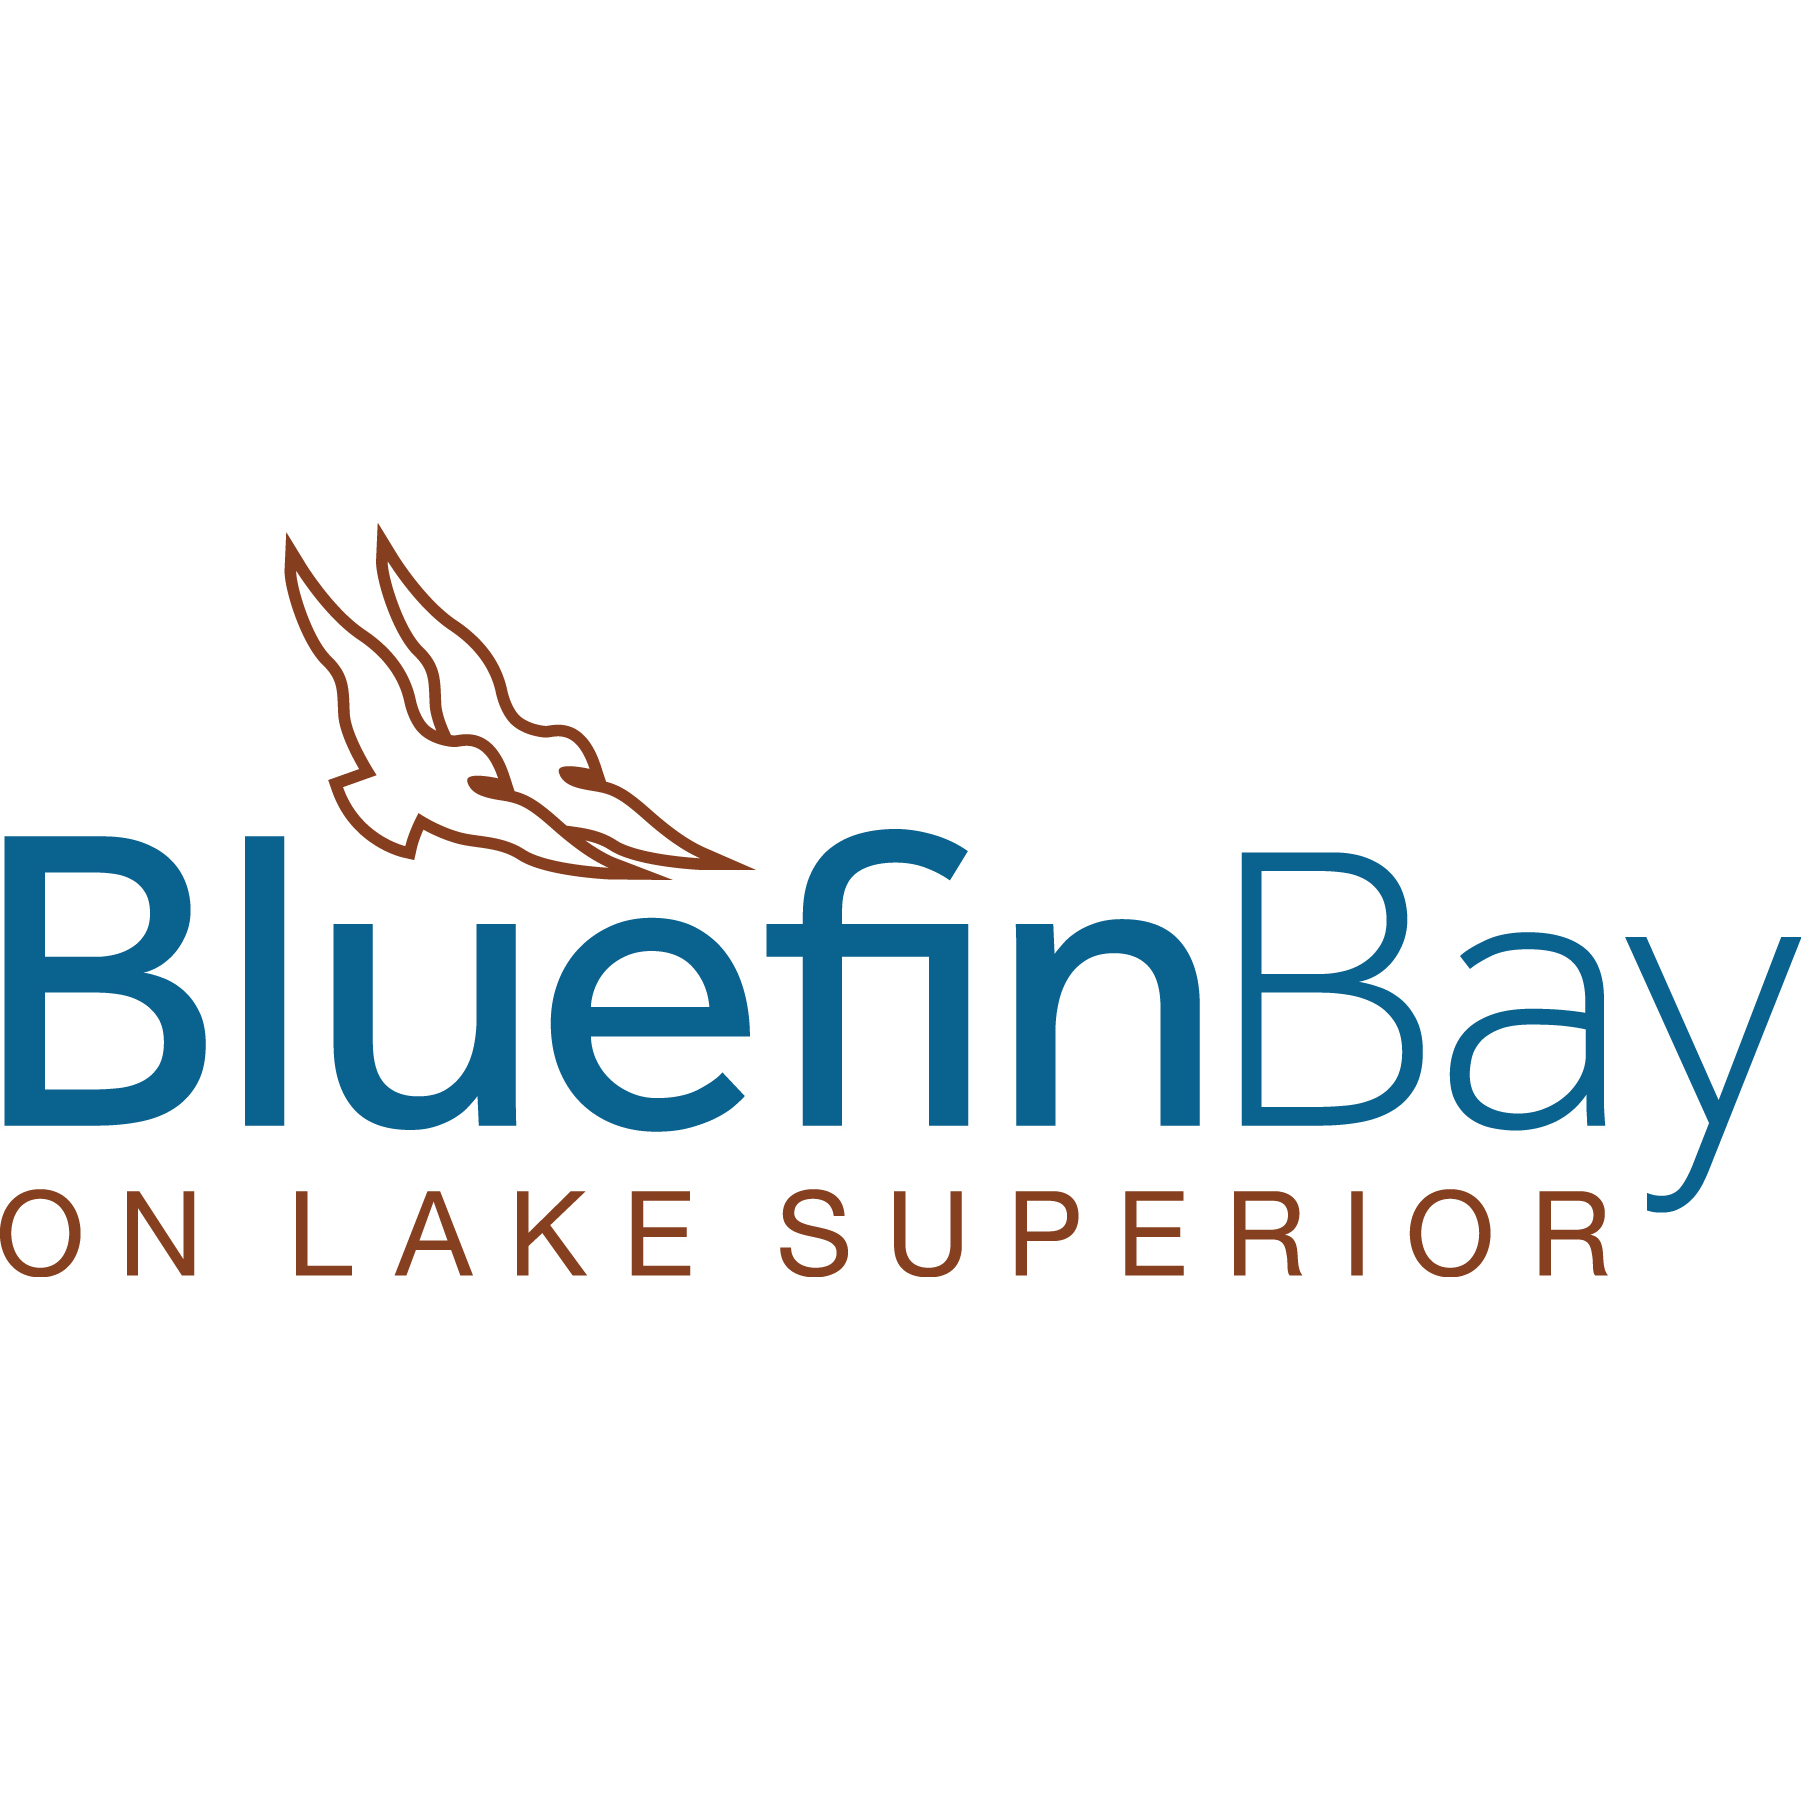 Bluefin Bay On Lake Superior